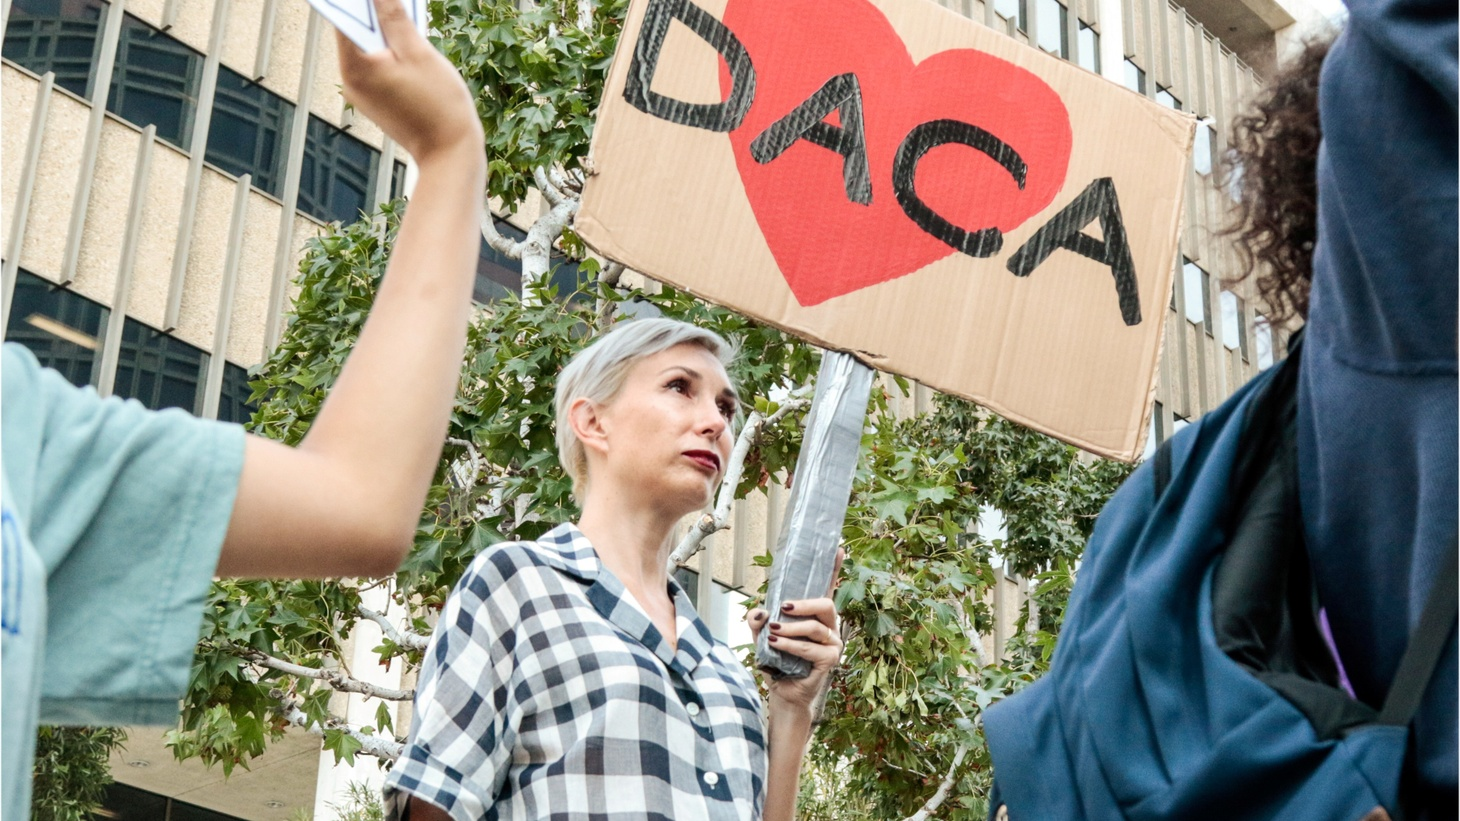 The Trump administration has put an end to the Deferred Action for Childhood Arrivals program, or DACA.The program will end in six months. Attorney General Jeff sessions says this is an unconstitutional program so what could Congress could do to normalize the immigration status of some 800,000 Dreamers?